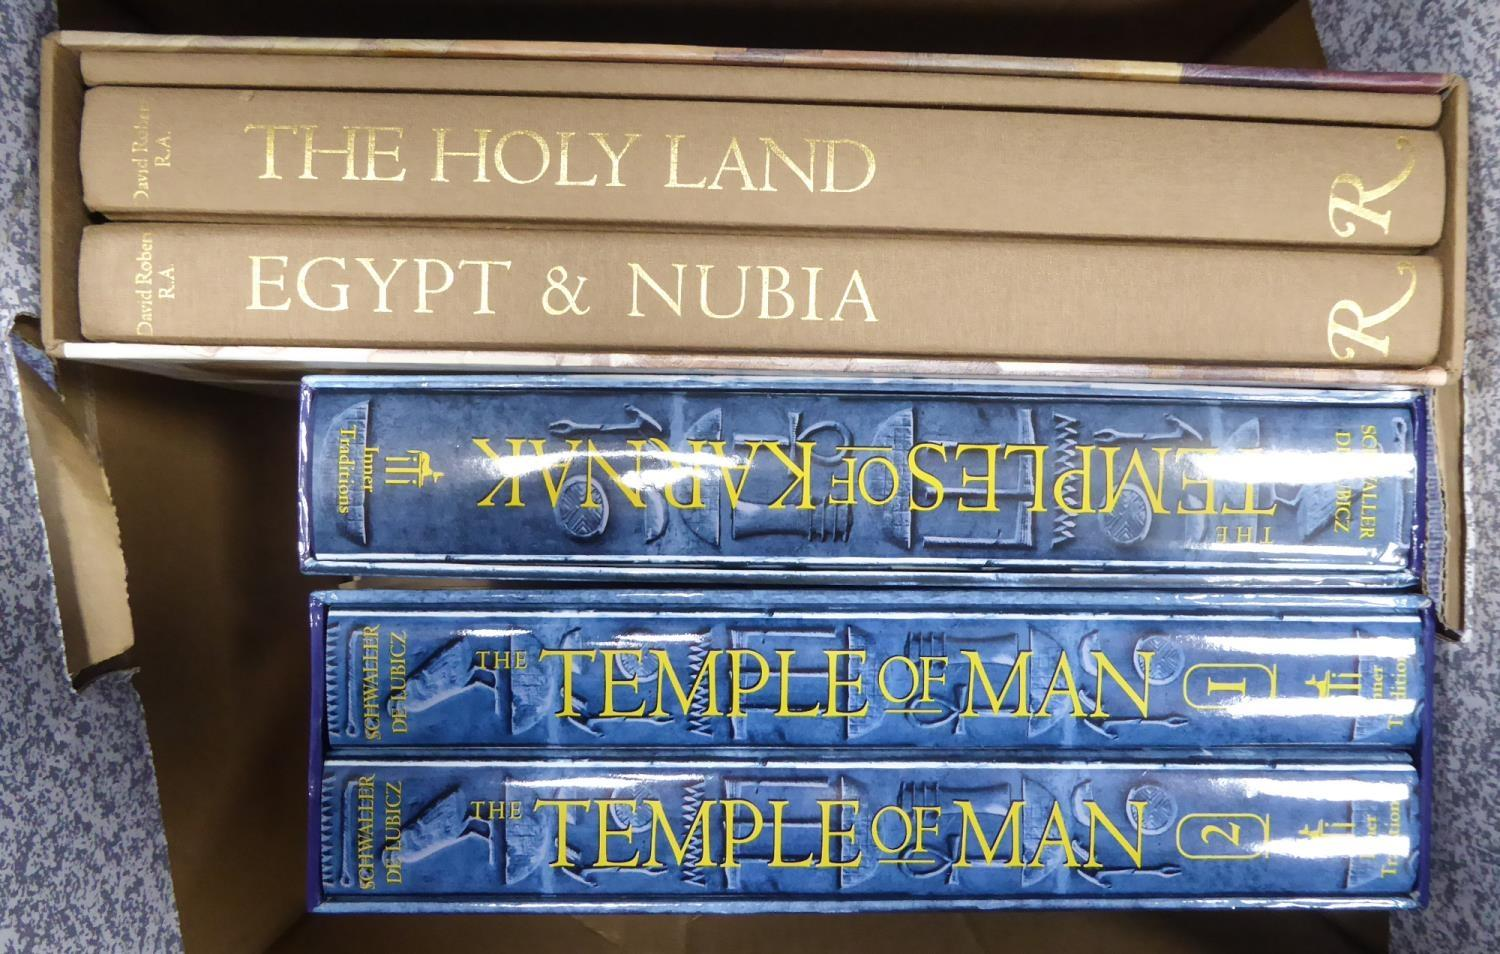 Lot 40 - DAVID ROBERTS, THE HOLY LANDS, EGYPT & NUBIA. Rizzoli facsimile edition 2000. Three volumes in